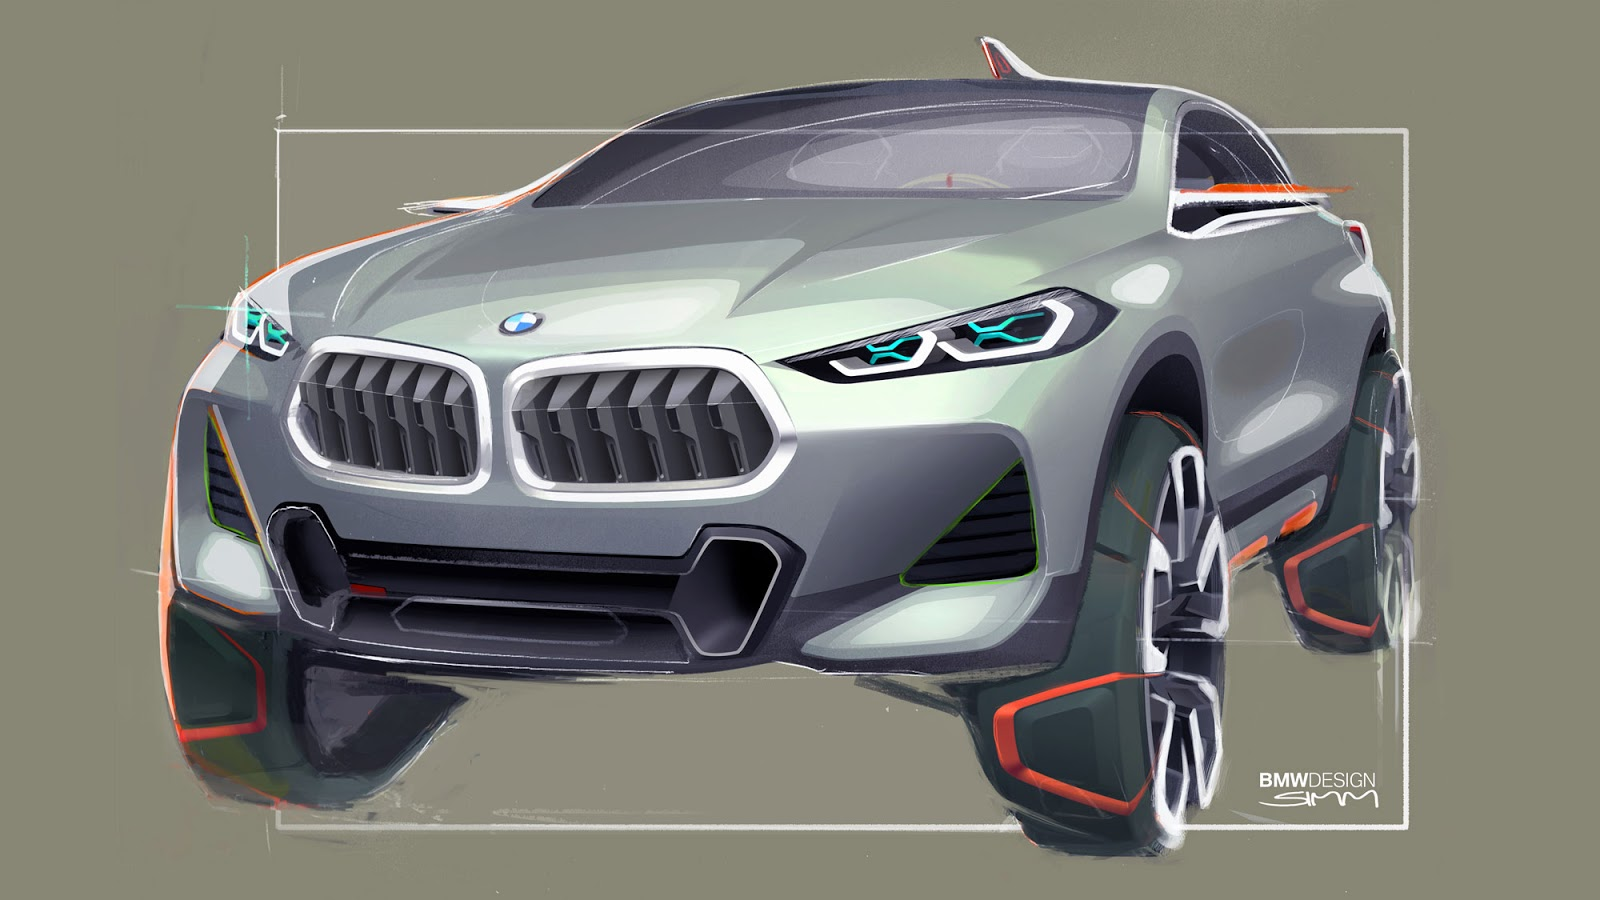 BMW X2 sketch by Sebastian Simm - front view in silver